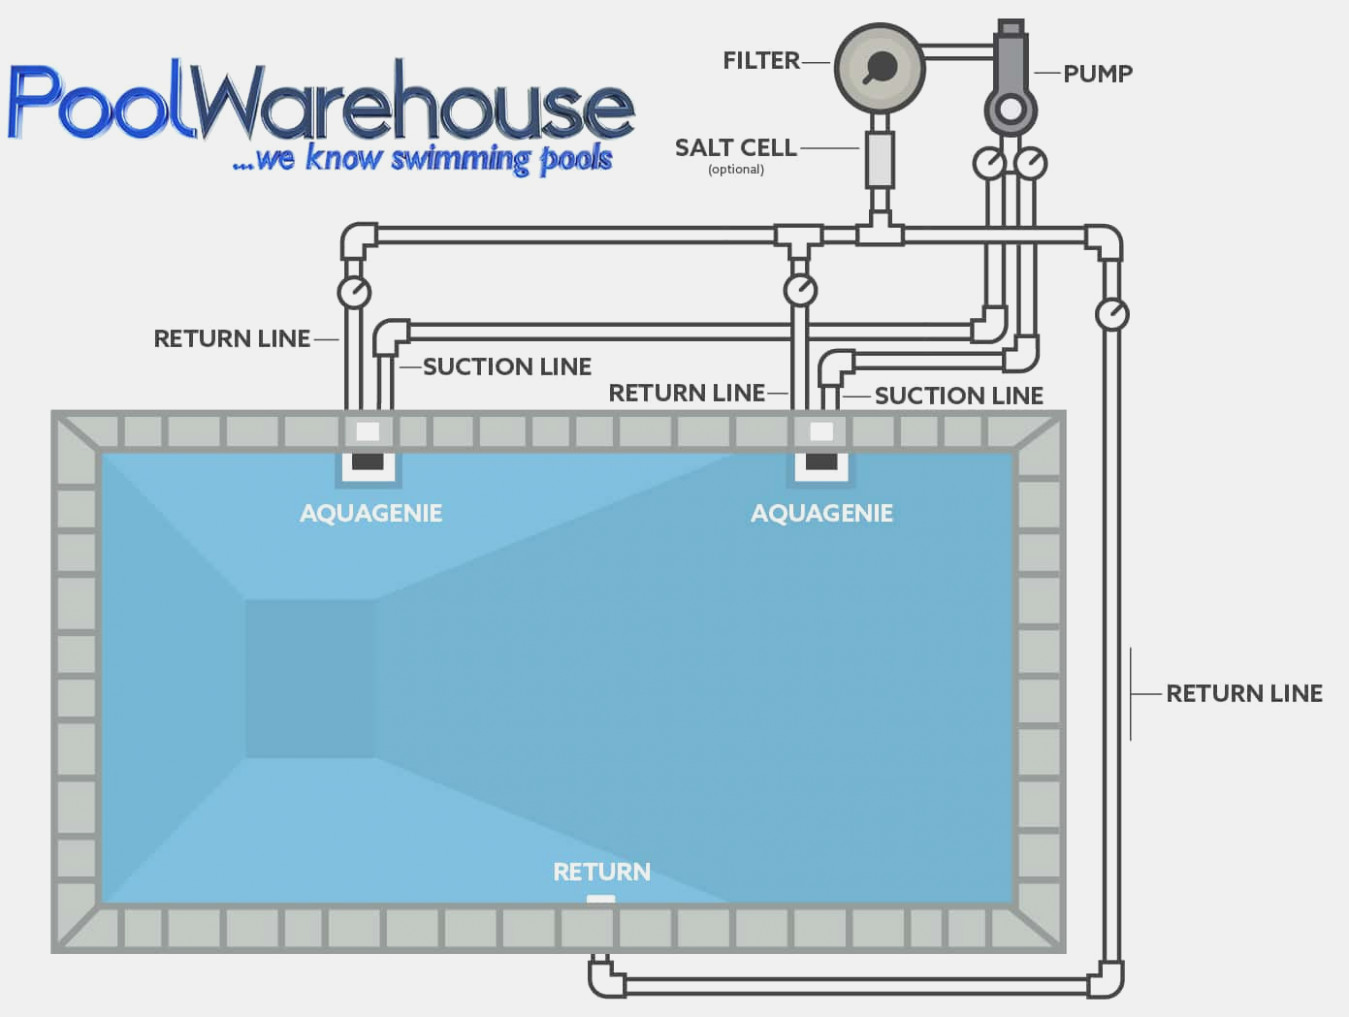 Swimming Pool Wiring Diagram from static-resources.imageservice.cloud